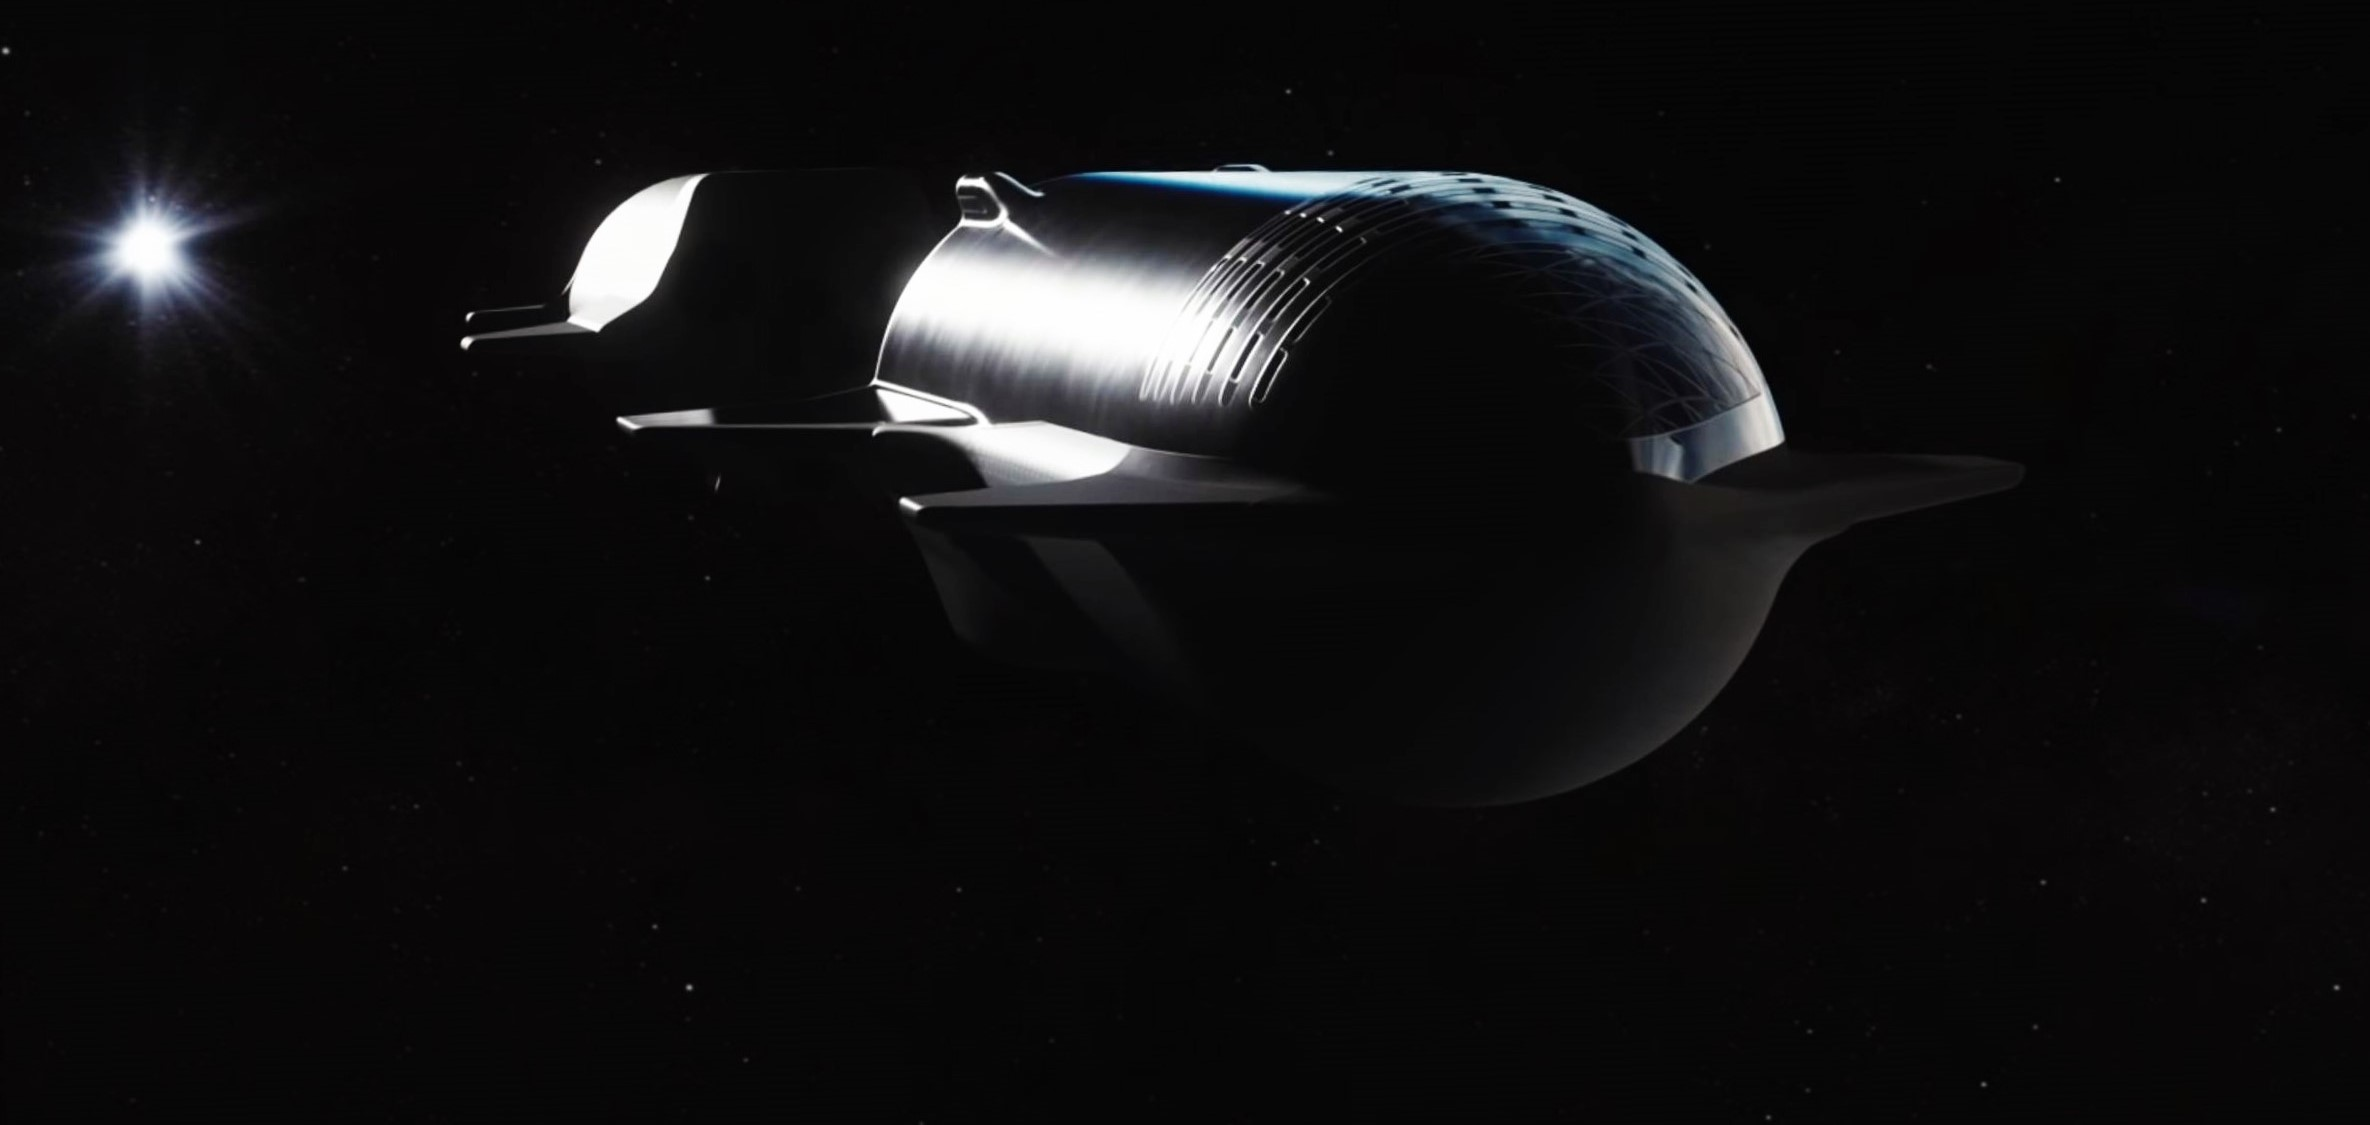 Starship Super Heavy 2019 (SpaceX) refueling 4 crop 2